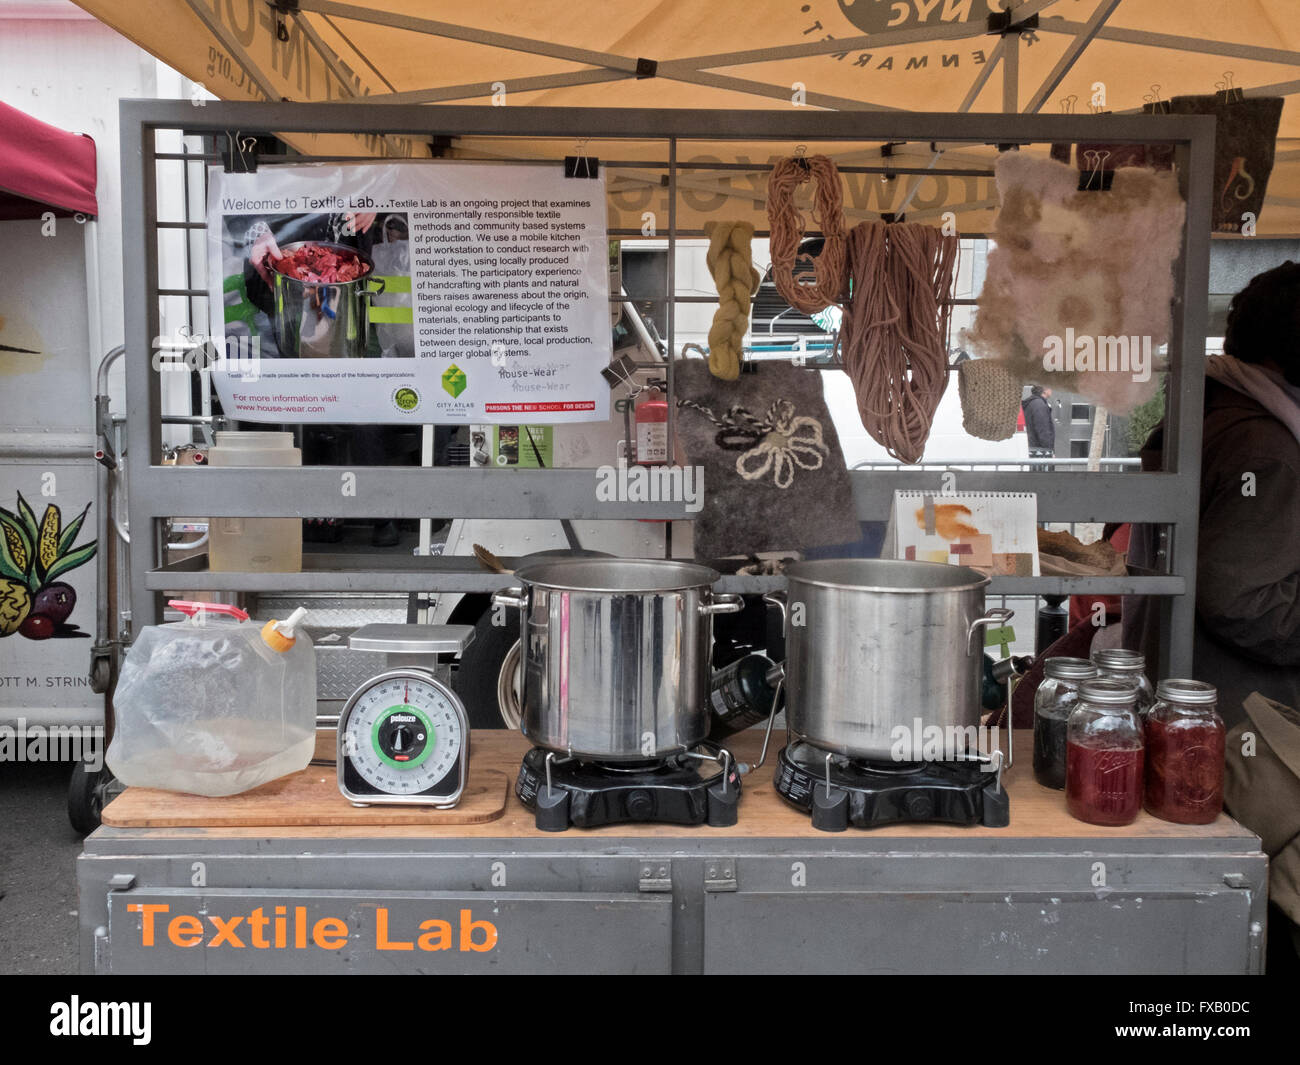 The New School Mobile Textile Lab exhibition of methods for natural & environmentally friendly textile production. - Stock Image